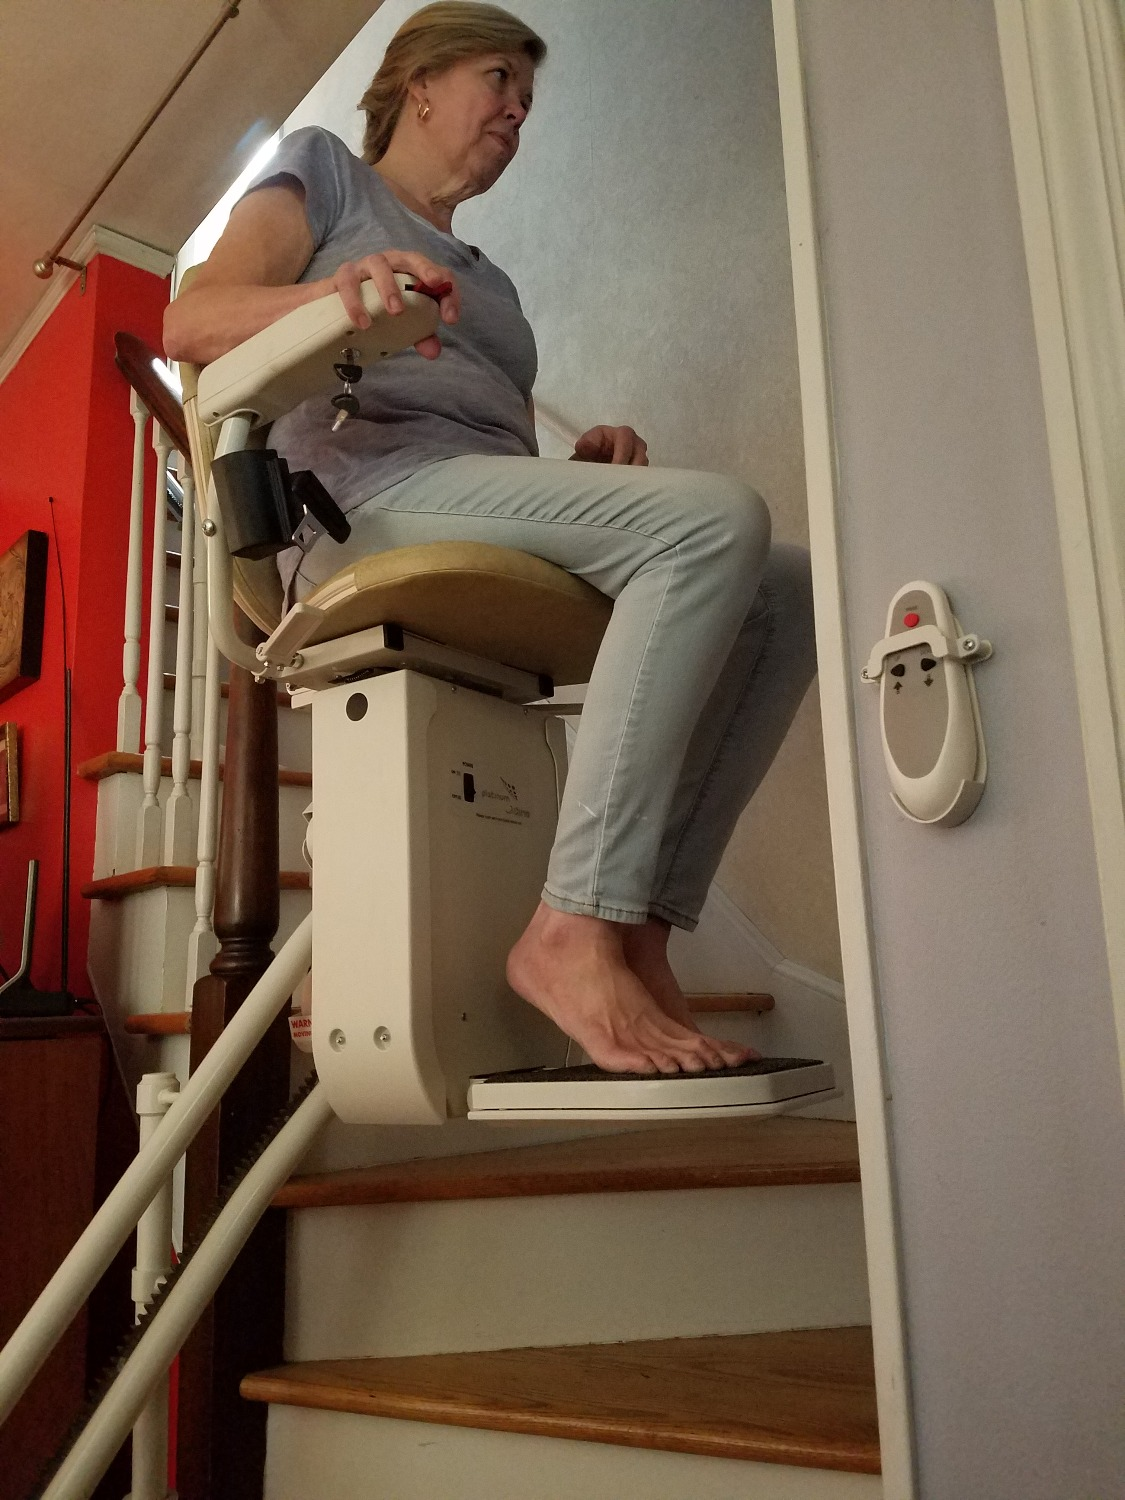 Curved Stair Lift with Rider